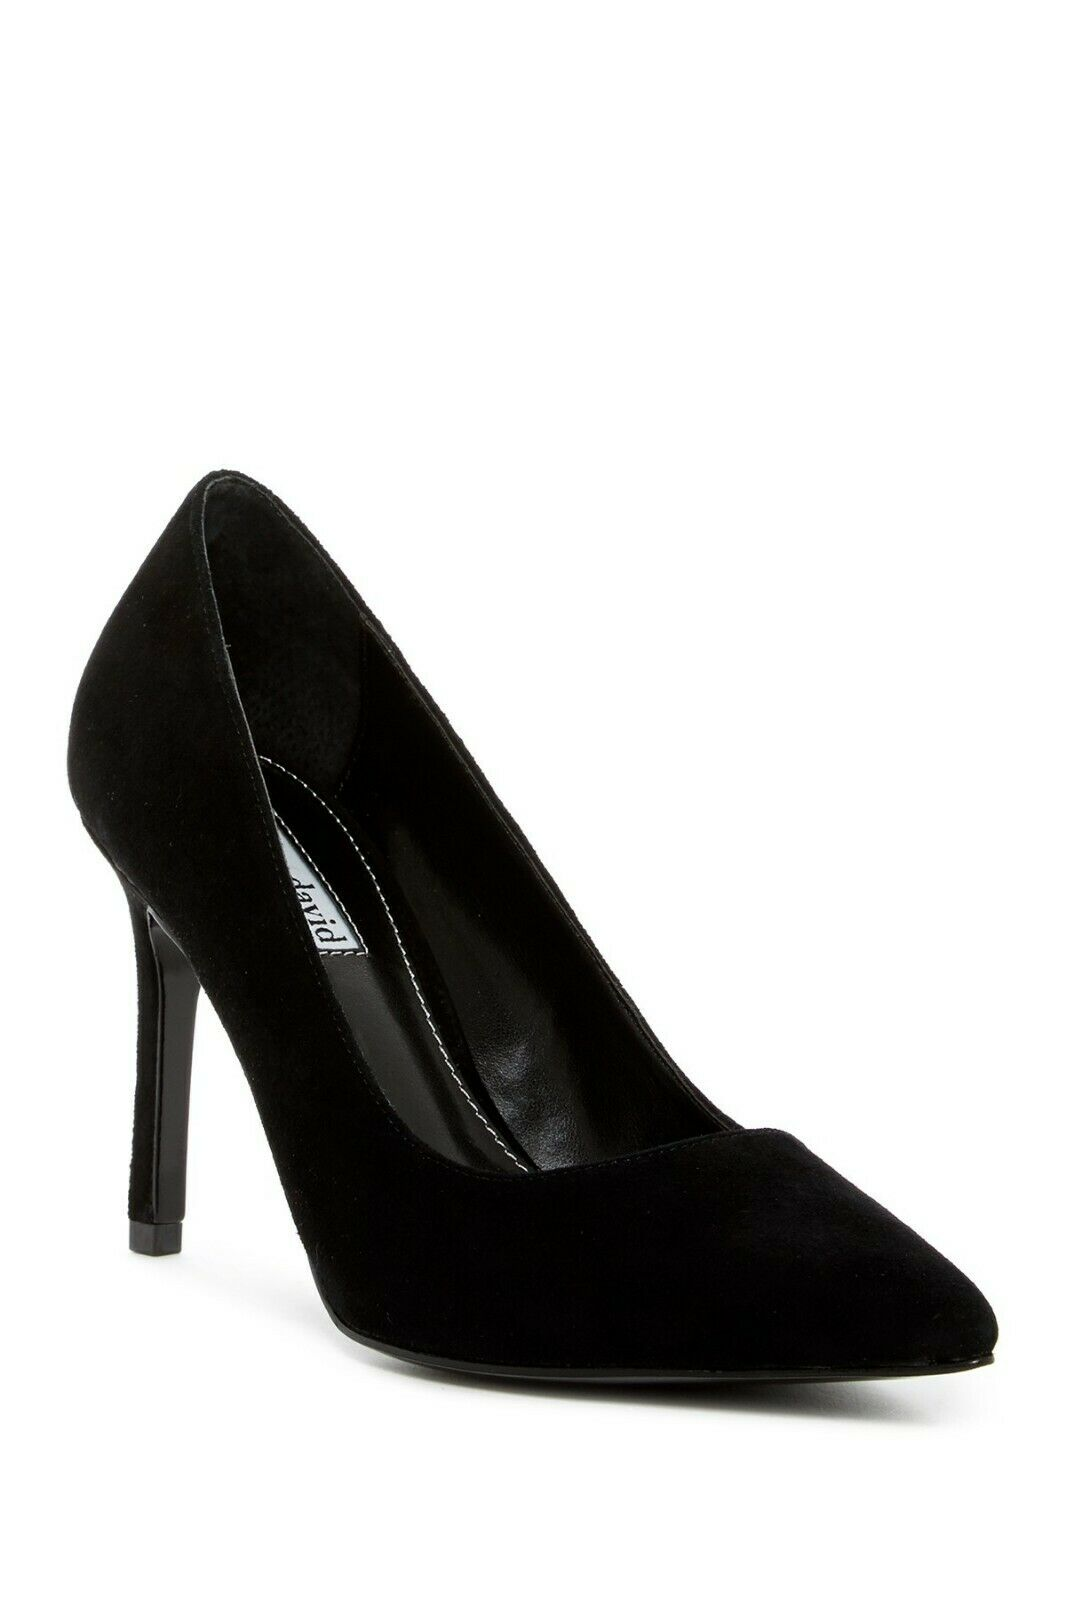 Charles David Denise Pointed Toe Suede Pump, Slip-on BLACK-SD Size 9.5,  229 NWB